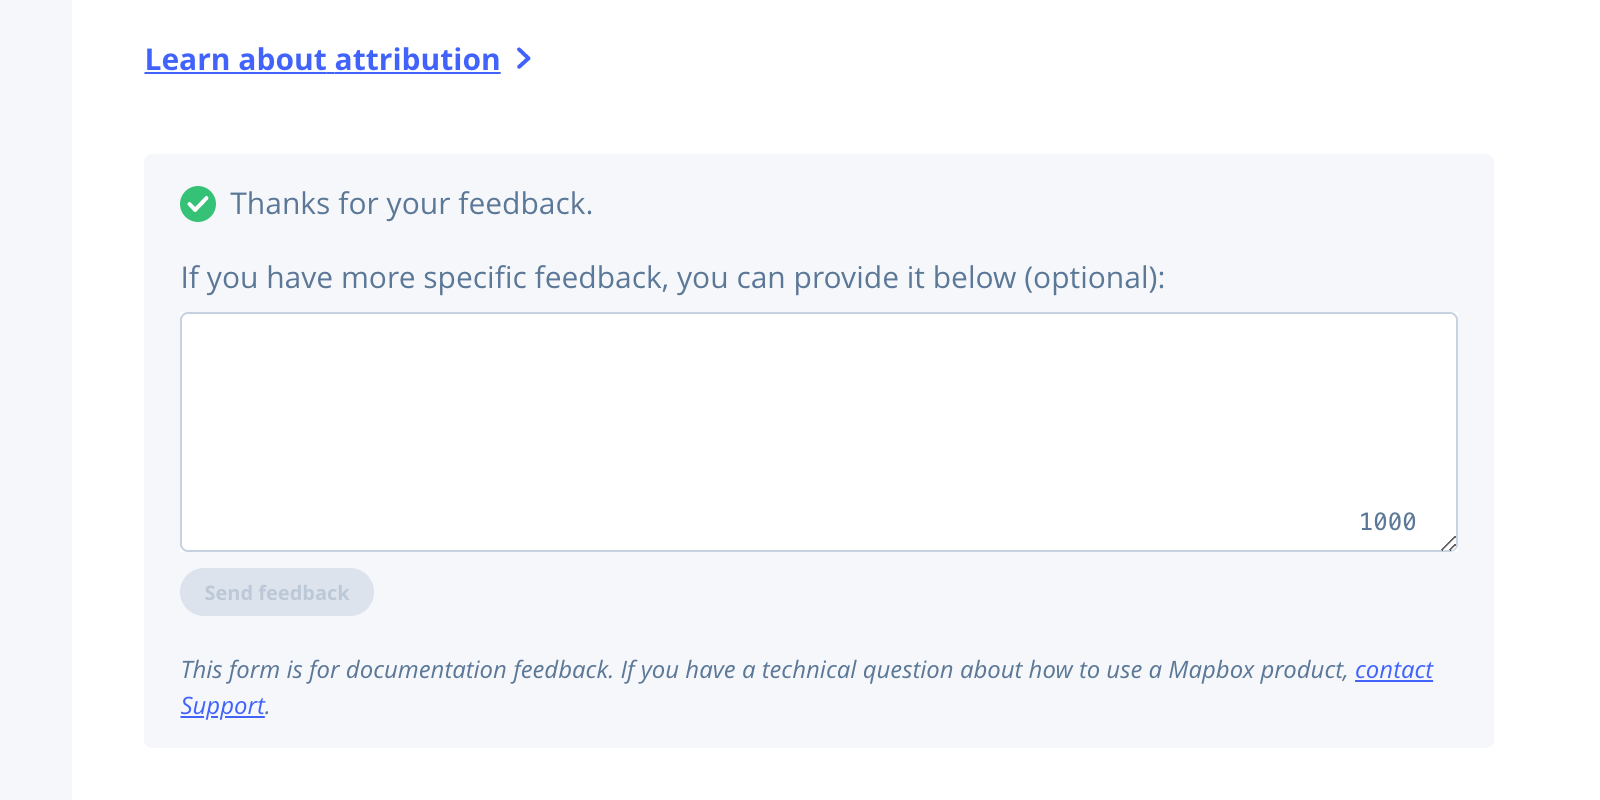 If you have more specific feedback, you can give it below (optional).